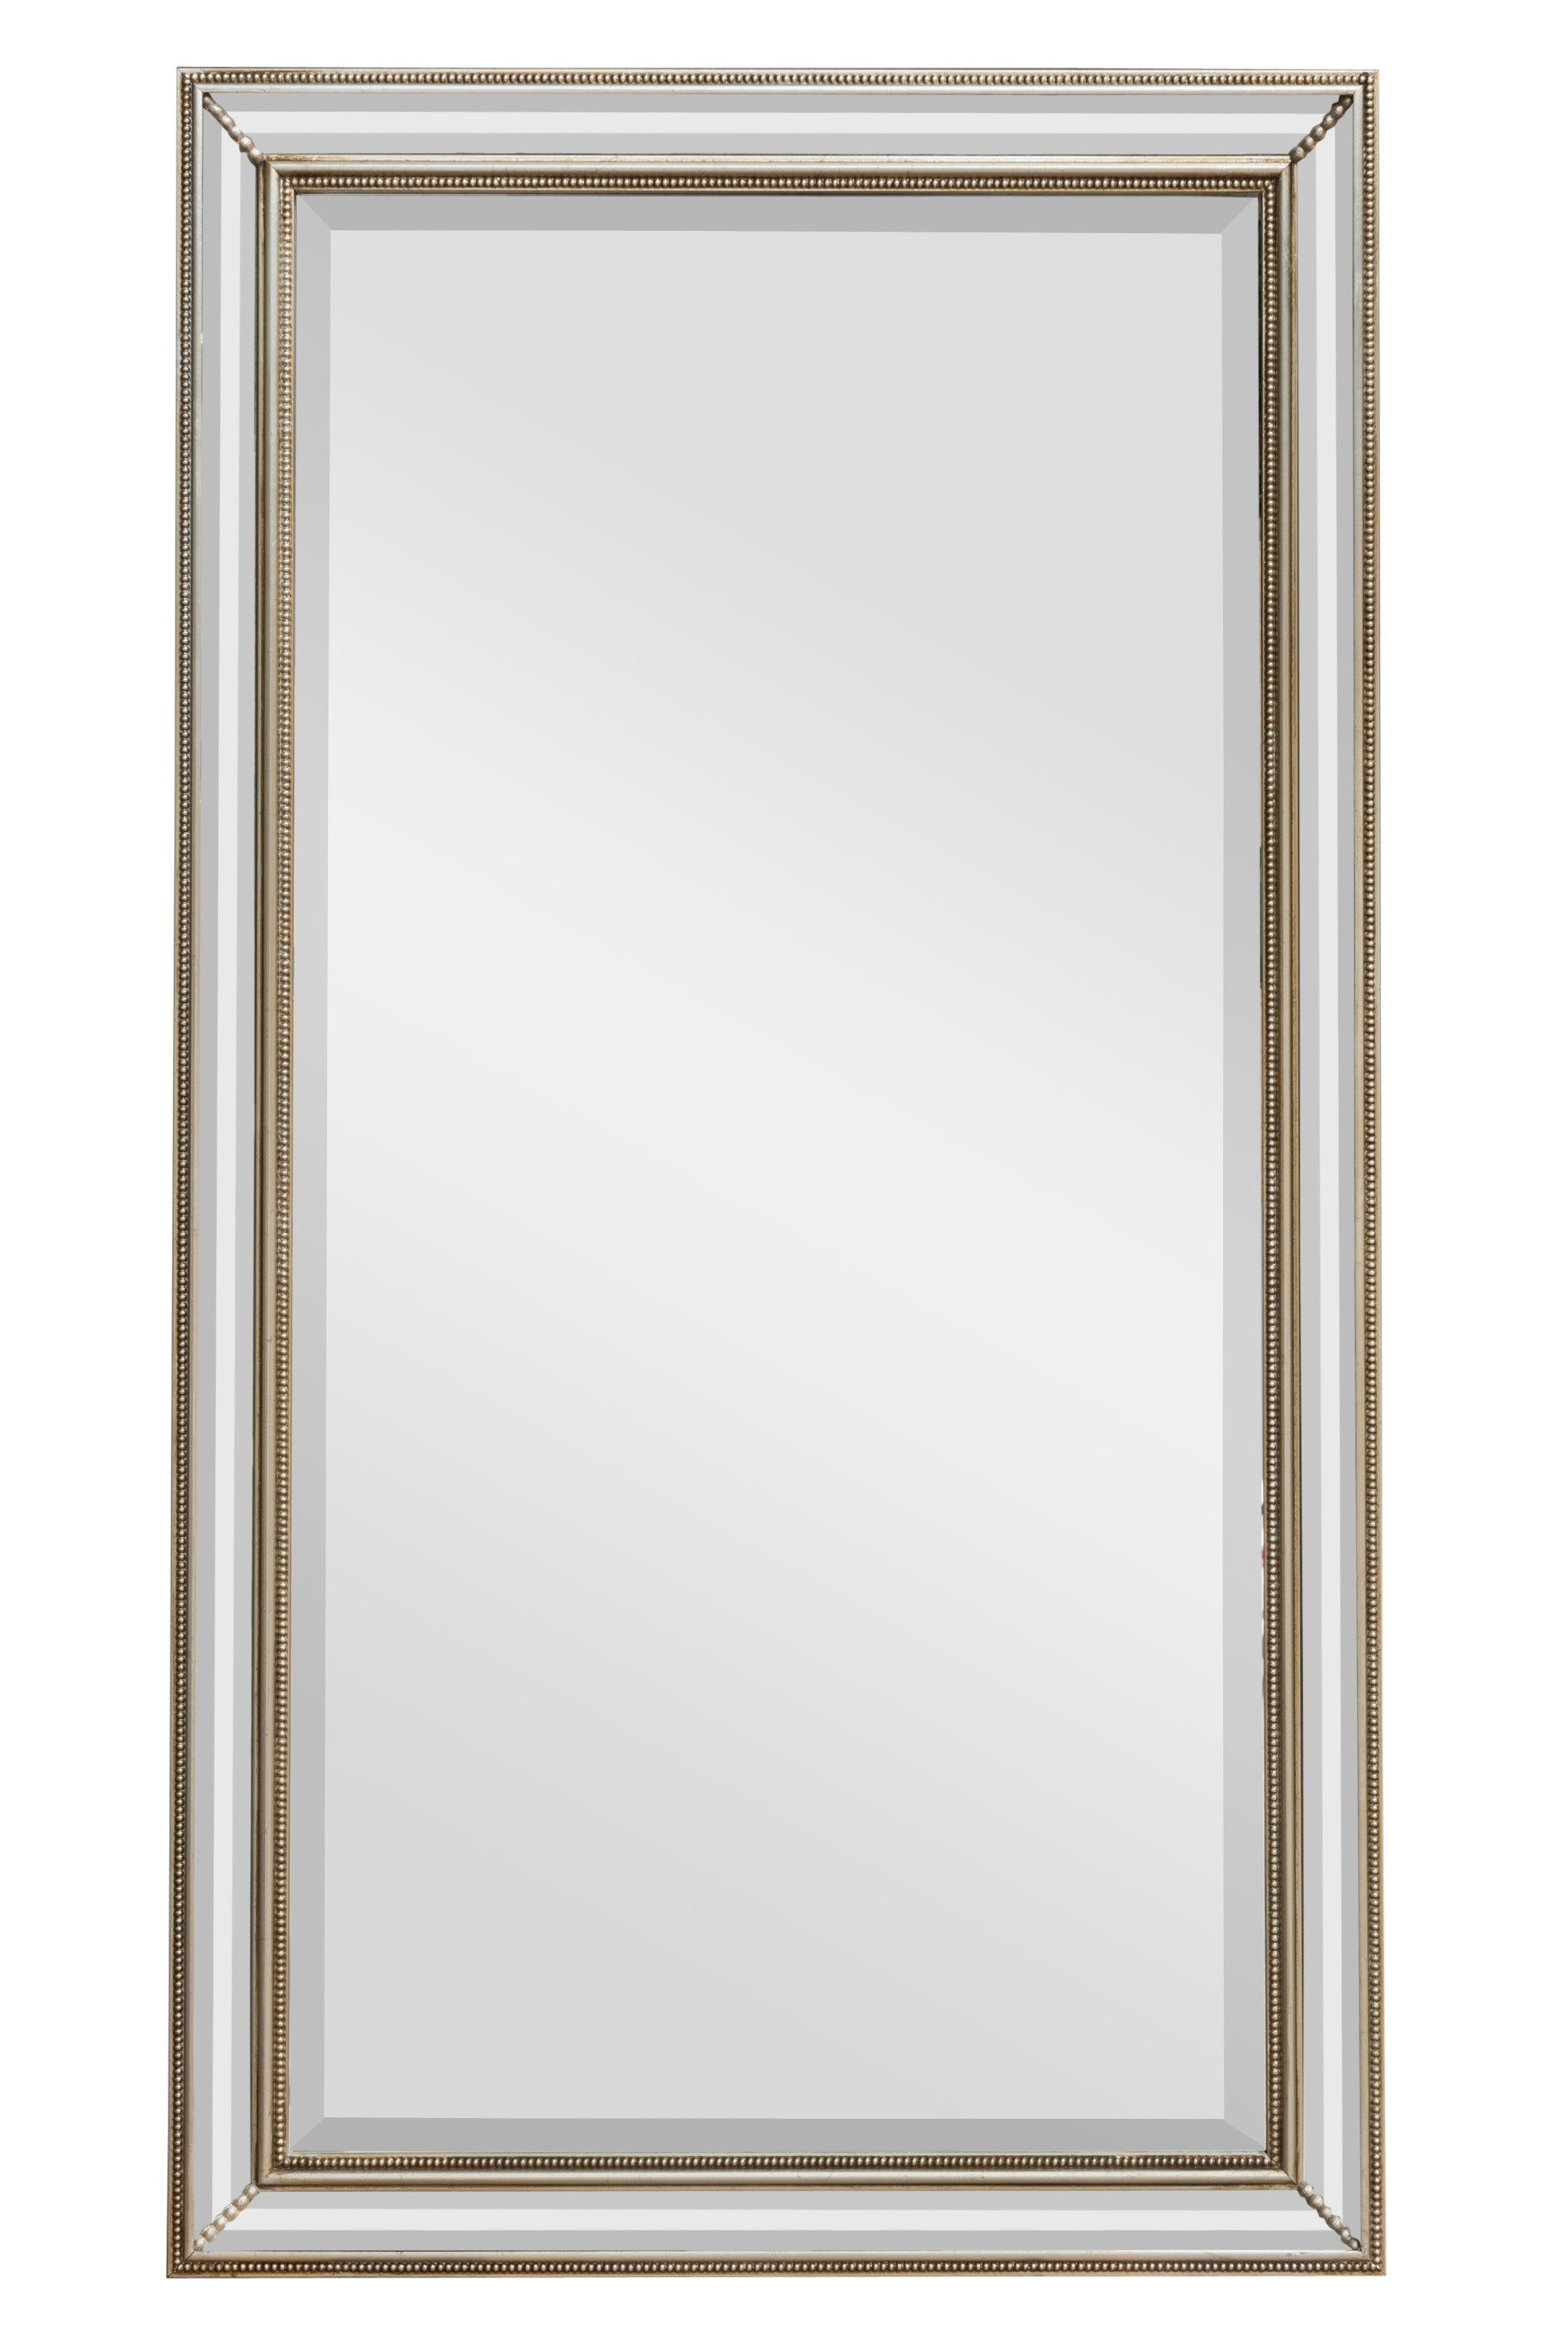 Beaded Cushion Mirror Bedroom Mirrors For Sale Panfili Mirrors In Double Bevelled Mirror (View 14 of 15)